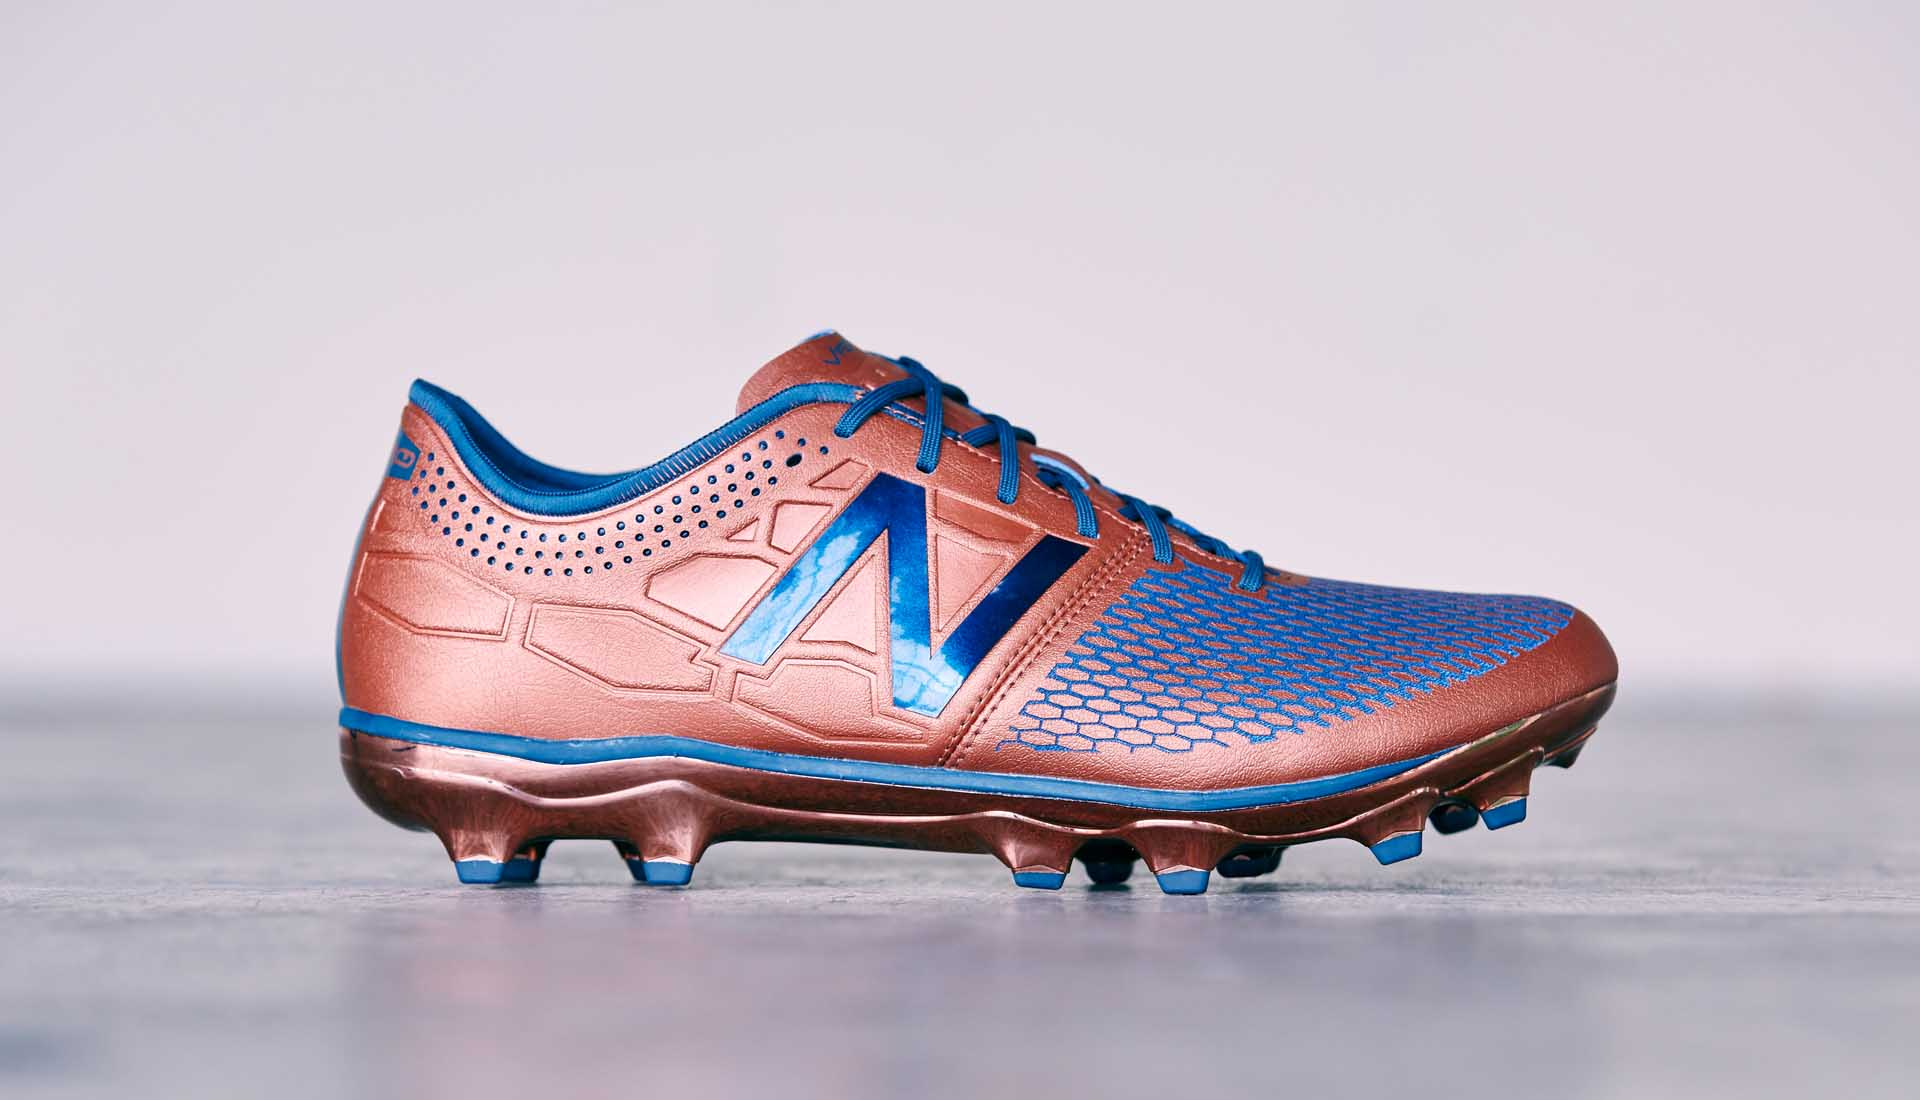 New Balance Visaro 2.0 Pro FG Conduction Pack - Cuivre/Bleu